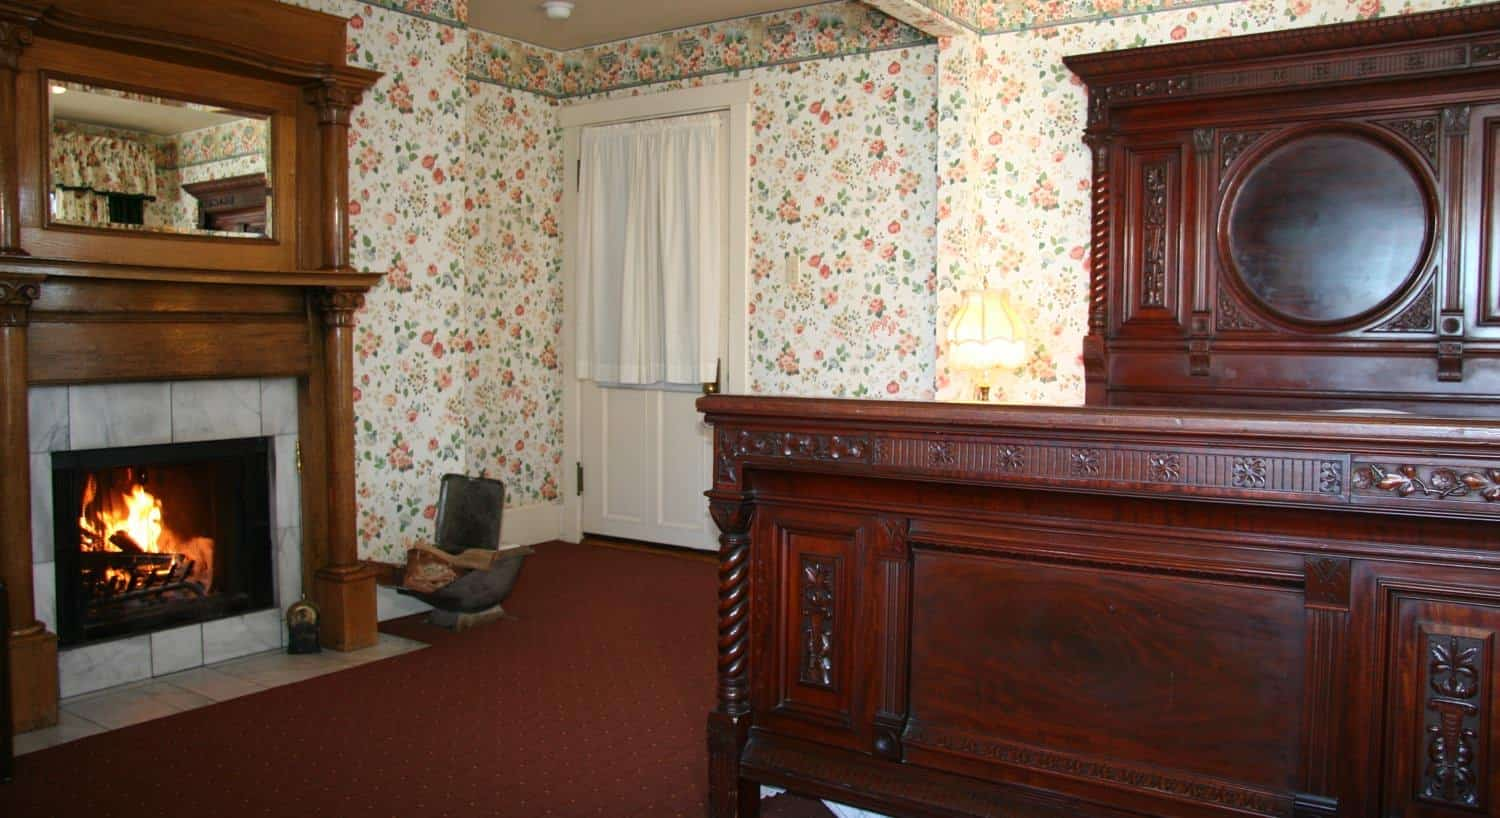 Malarin guest room with floral papered walls, carpeting, fireplace with wood mantel surround, carved wood bed